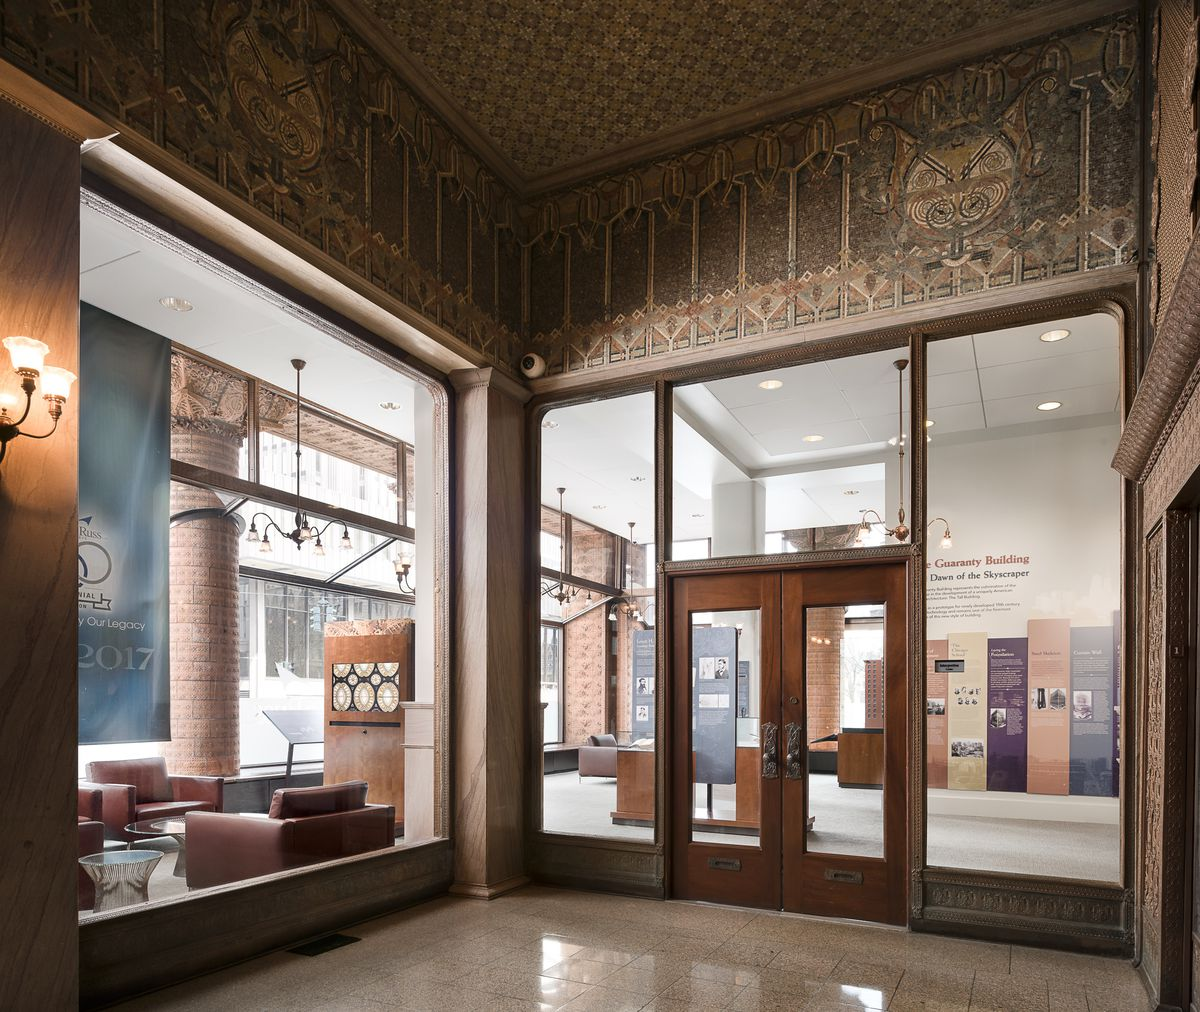 how buffalo turned architectural heritage into an engine for